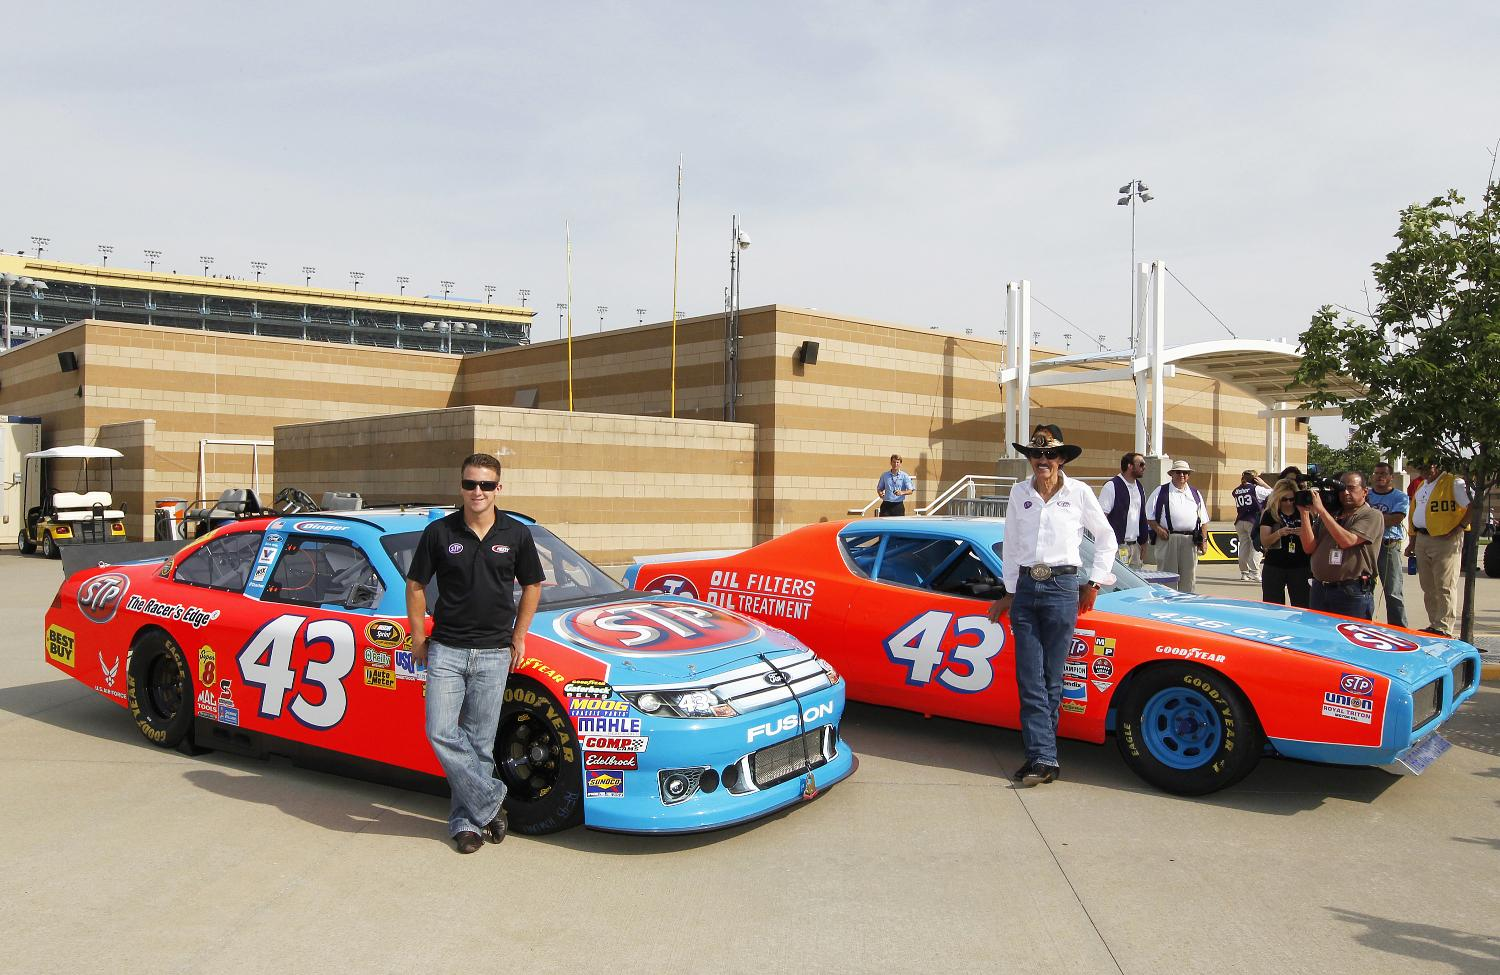 King Richard Petty Honored In Stp S Nascar Return Autoevolution